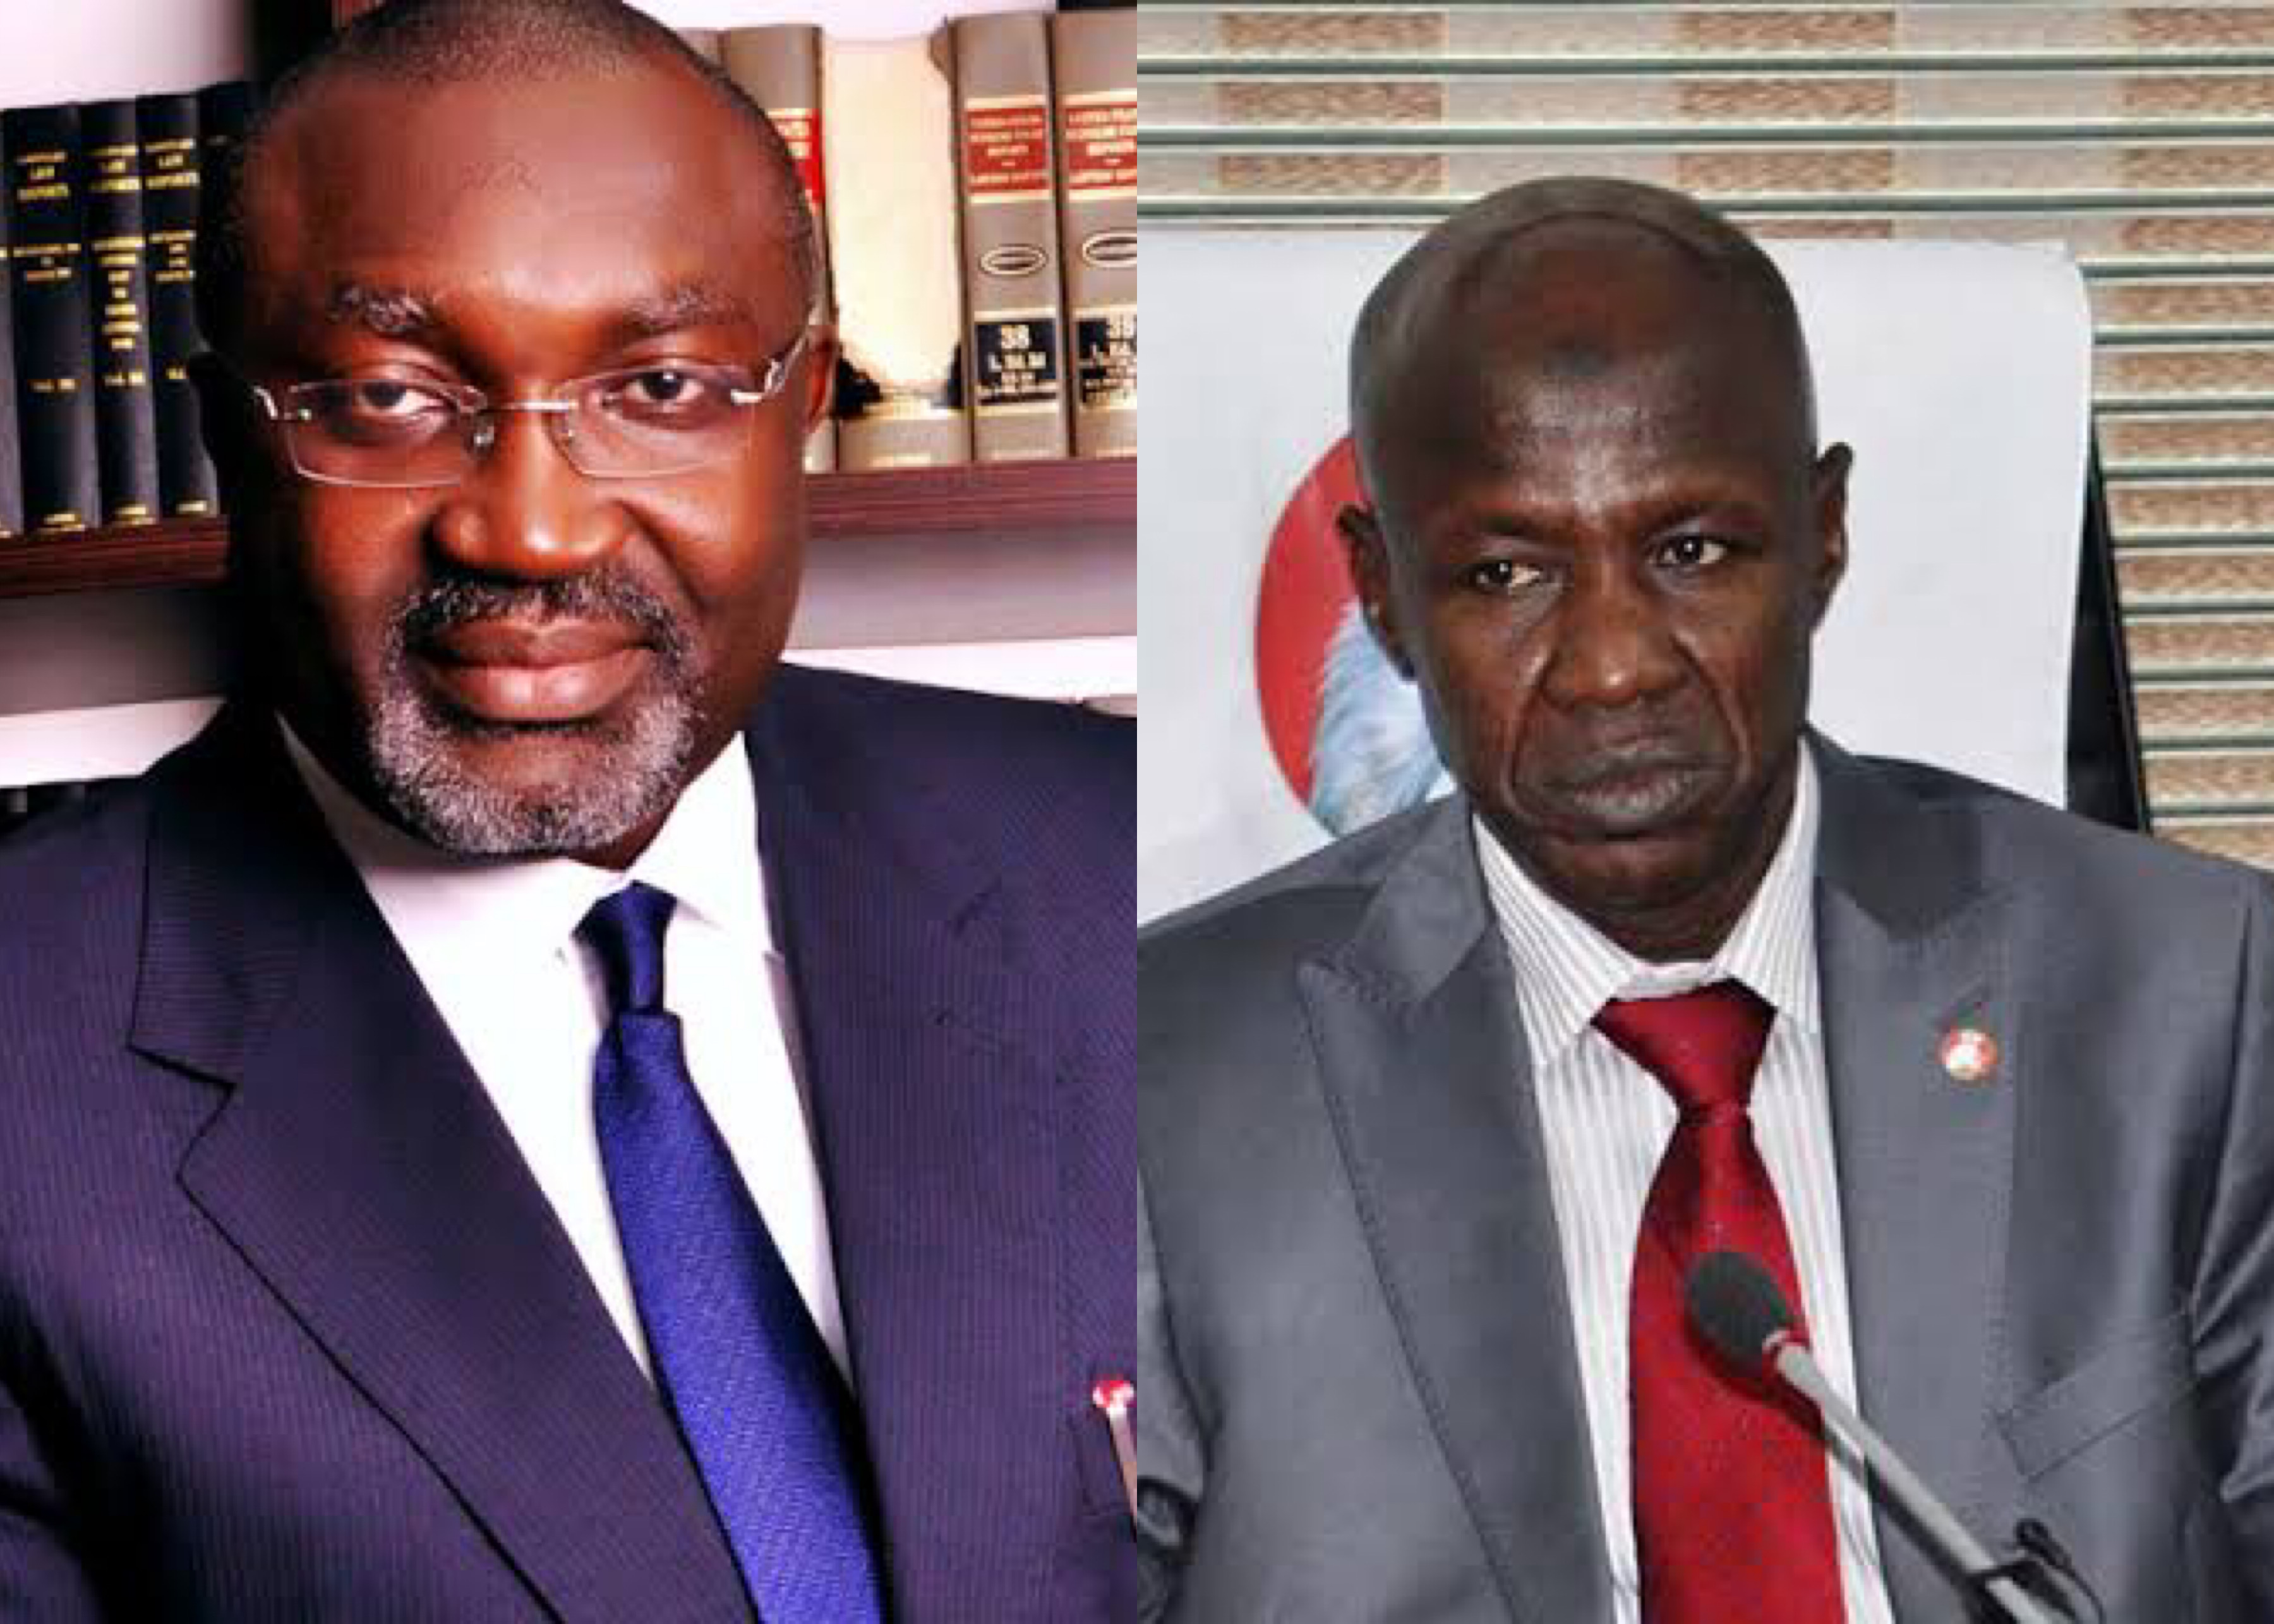 Godwin Obla, a former prosecutor with the Economic and Financial Crimes Commission (EFCC), has accused Ibrahim Magu of ordering his detention